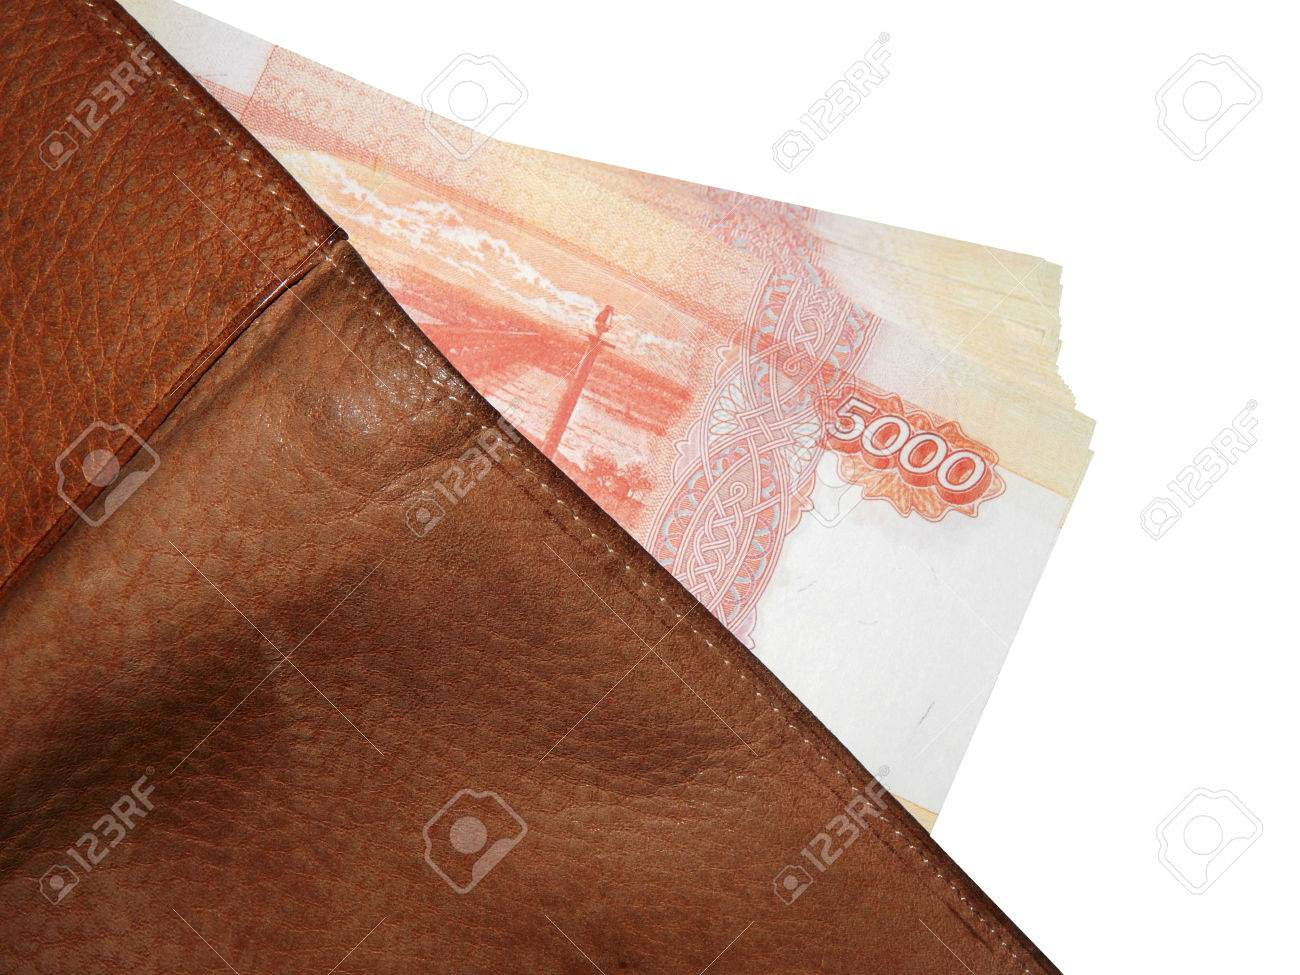 http://previews.123rf.com/images/avatap/avatap1601/avatap160100003/50887091-Money-in-your-wallet-at-5-000-rubles-Stock-Photo.jpg